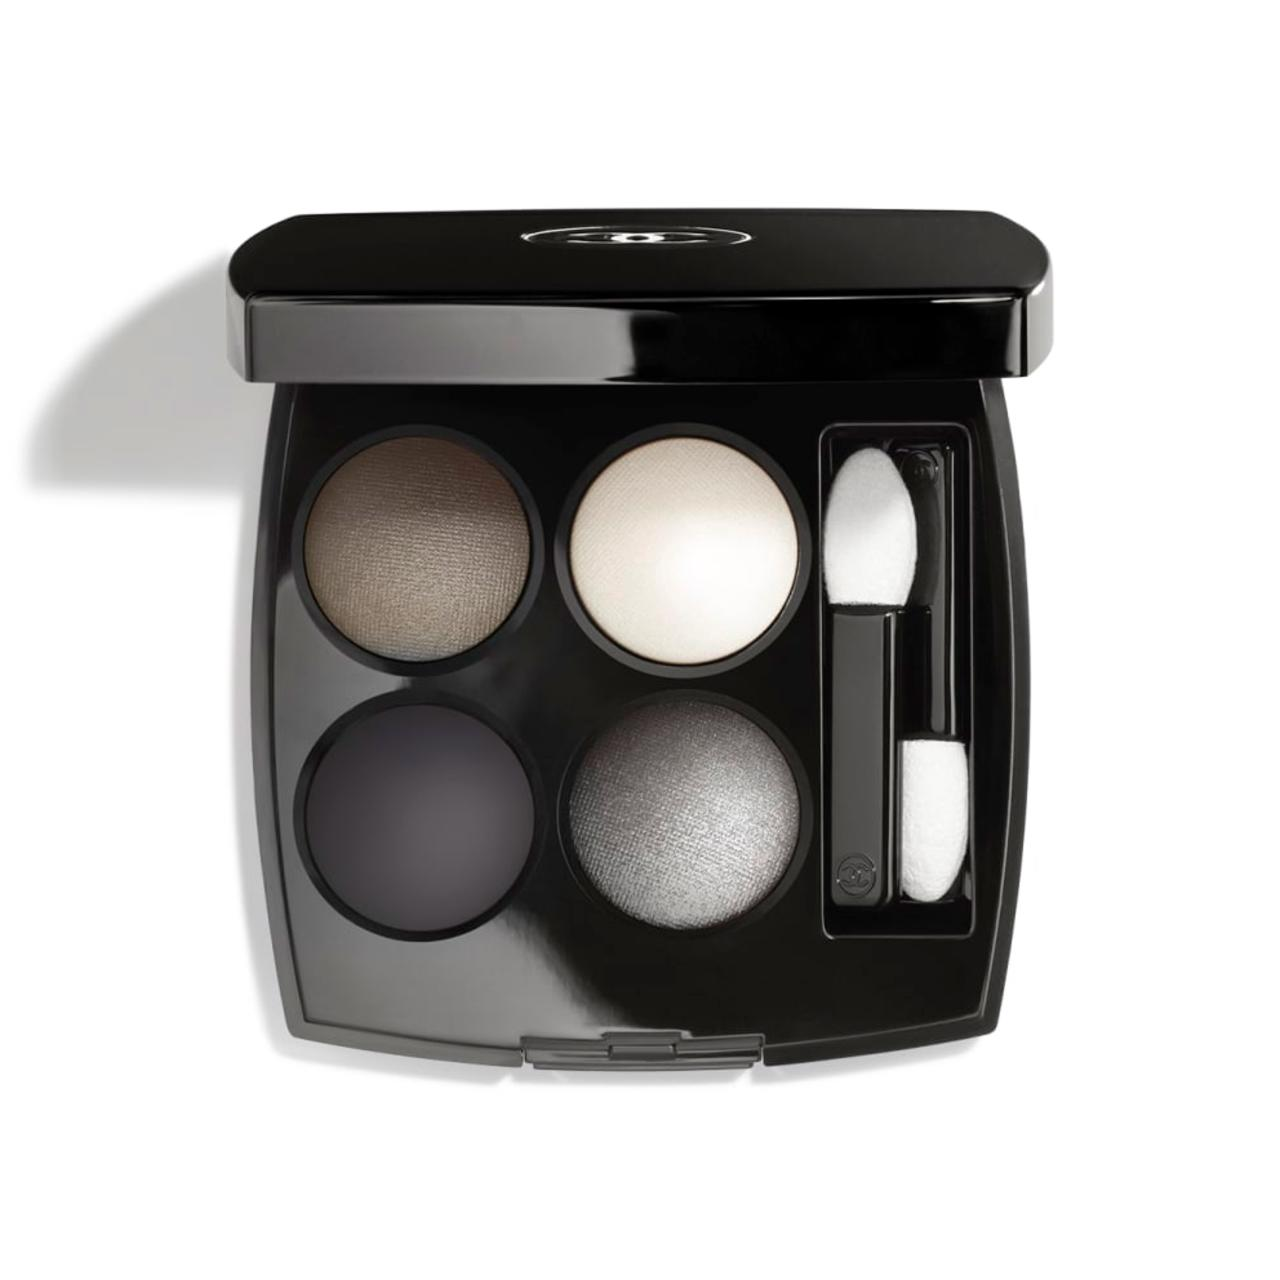 Chanel Les 4 Ombres (334 Modern Glamour).